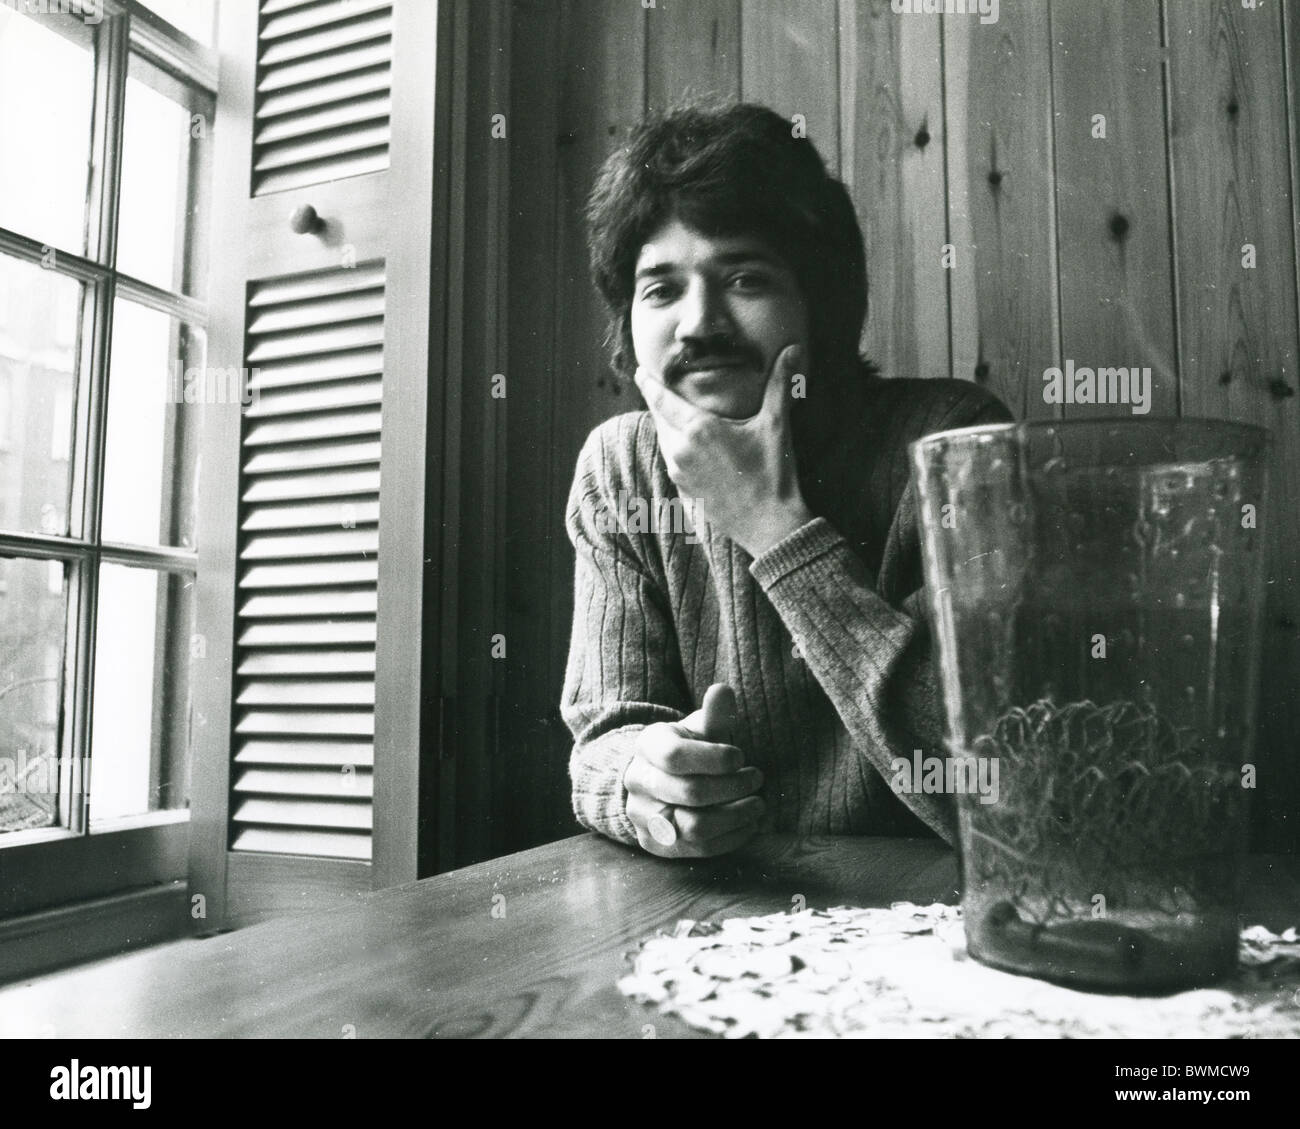 PETER SARSTEDT UK pop singer in  1969. - Stock Image